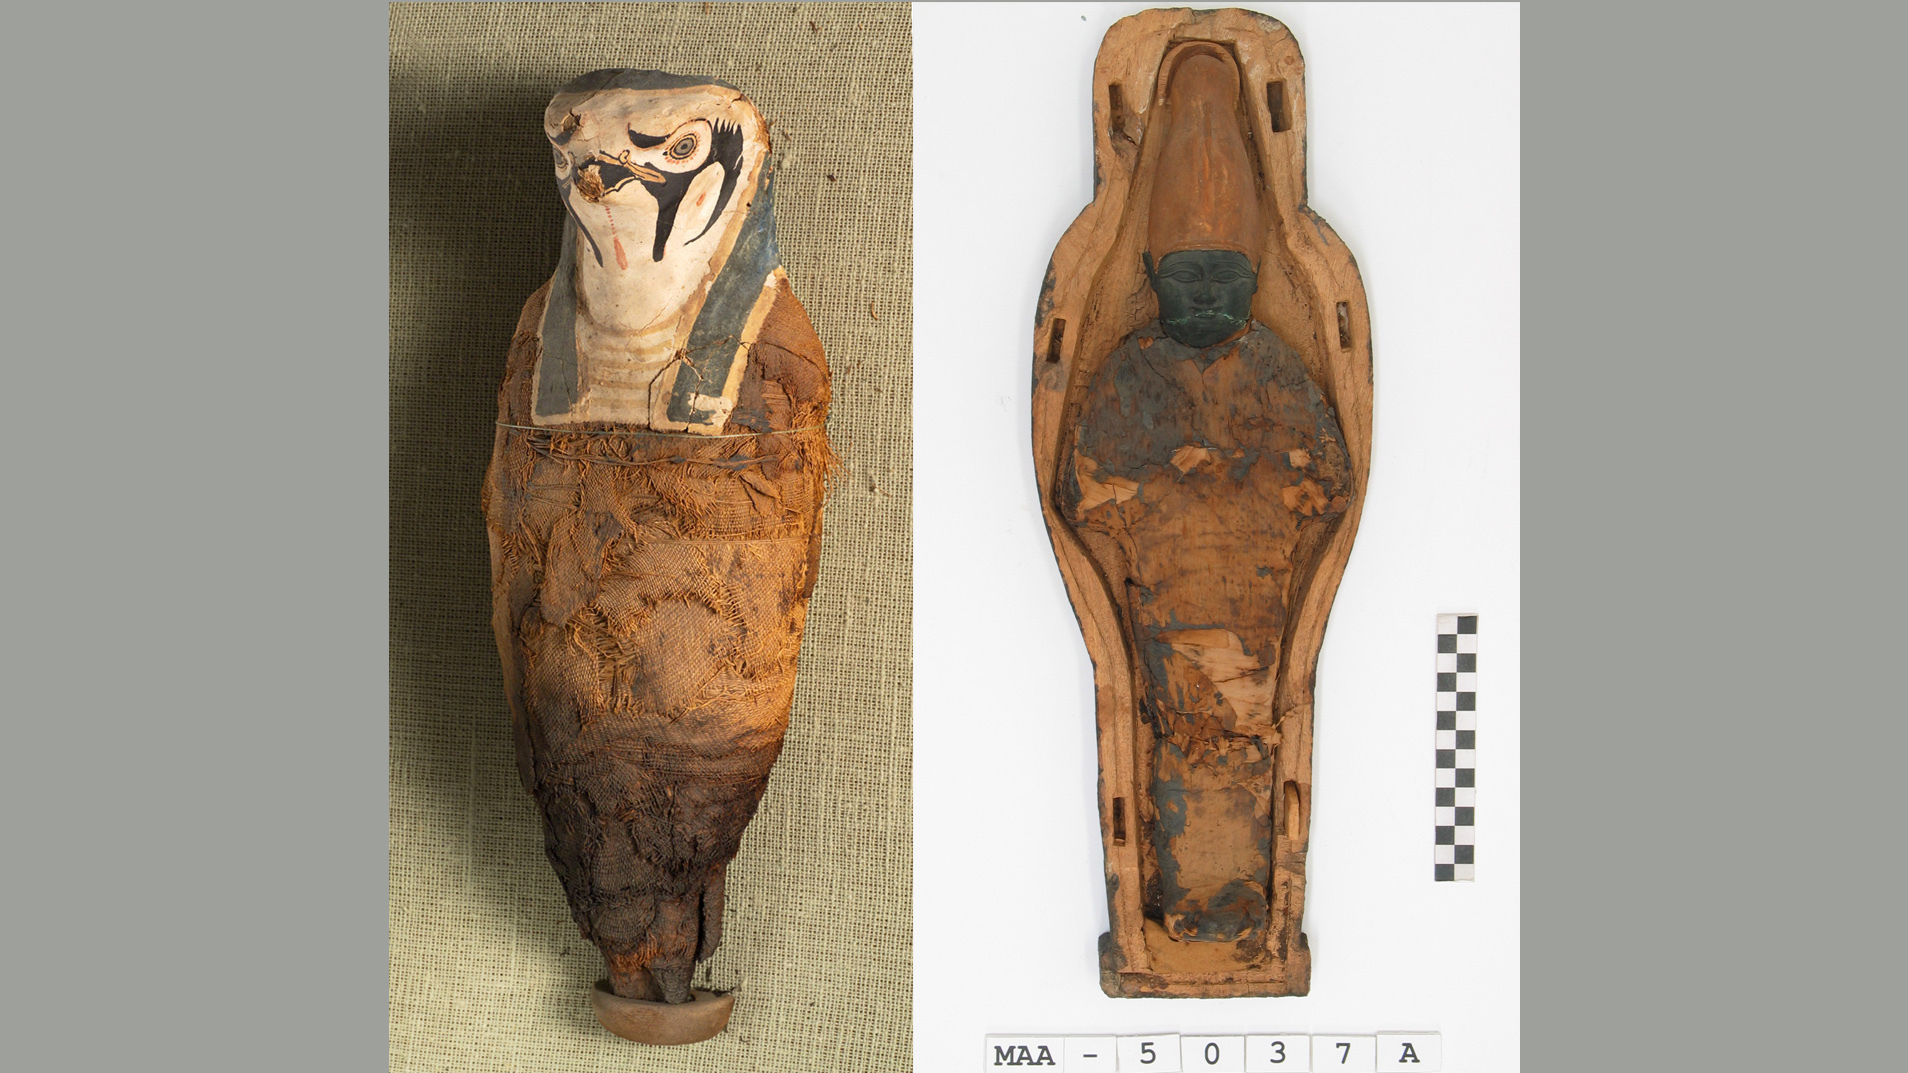 Little Ancient Egyptian Mummies Hold Surprises Inside And They Aren T Human Live Science Discover how the ancient egyptians made mummies! little ancient egyptian mummies hold